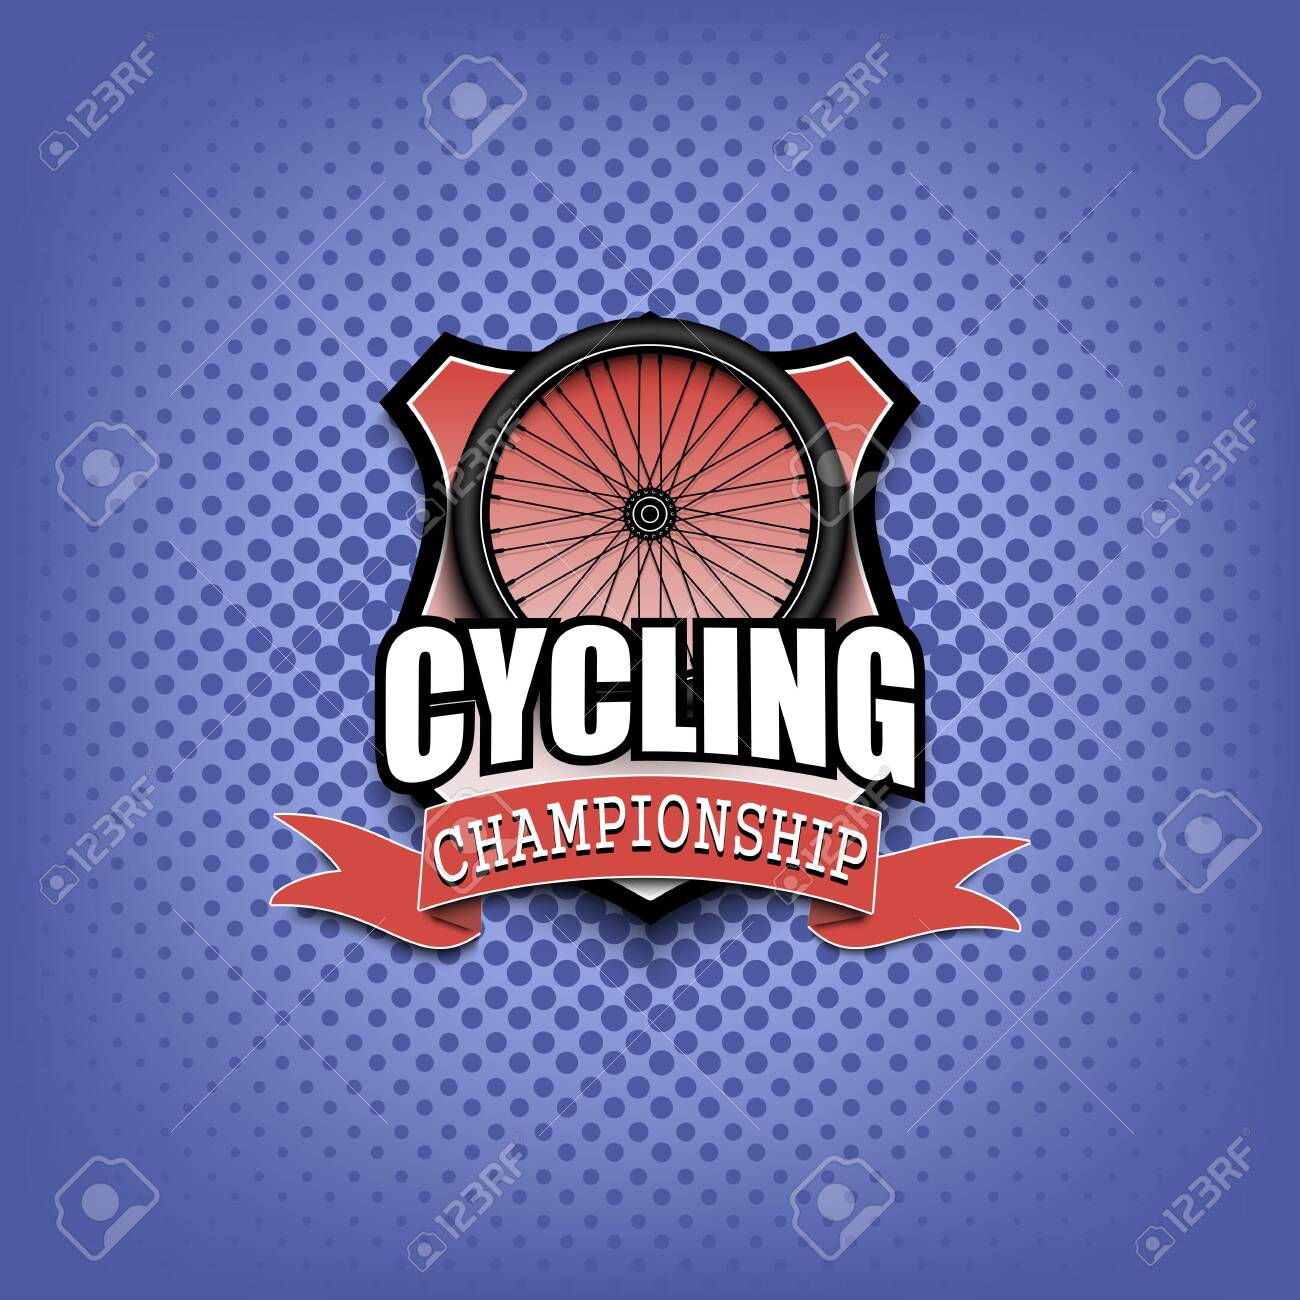 Cycling logo template design. Black and White. Vintage Style. Isolated on white background. Vector illustration - 120892001